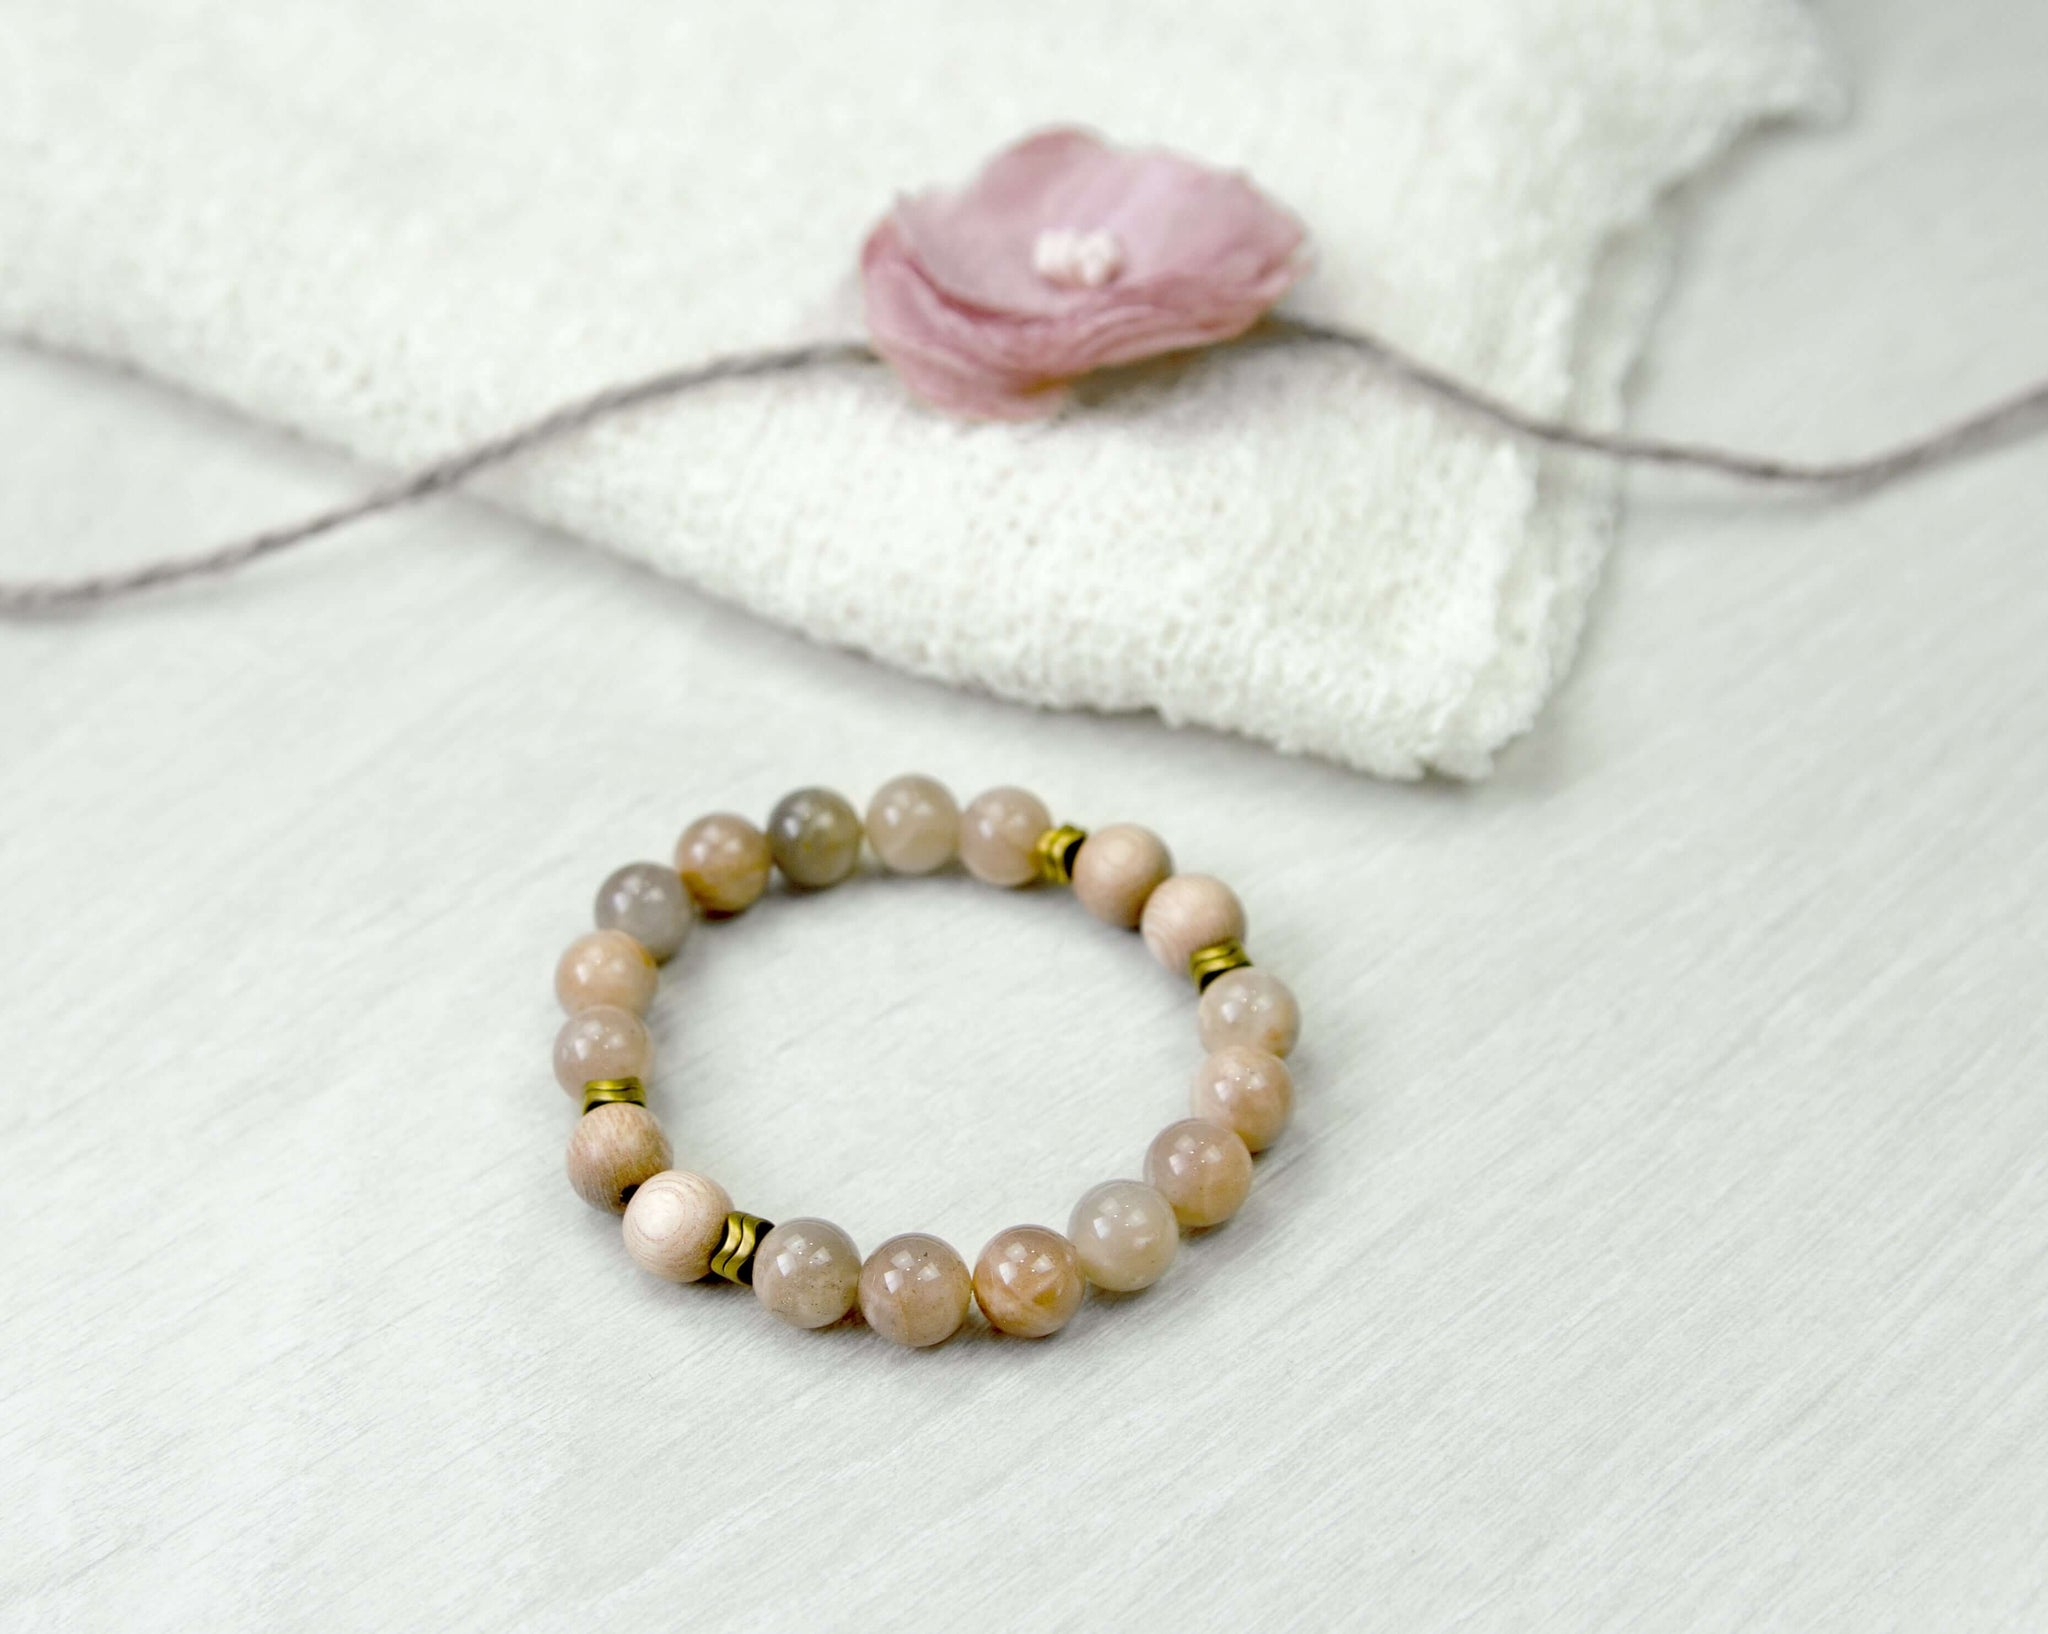 'Happiness and Prosperity' Sunstone Diffuser Bracelet